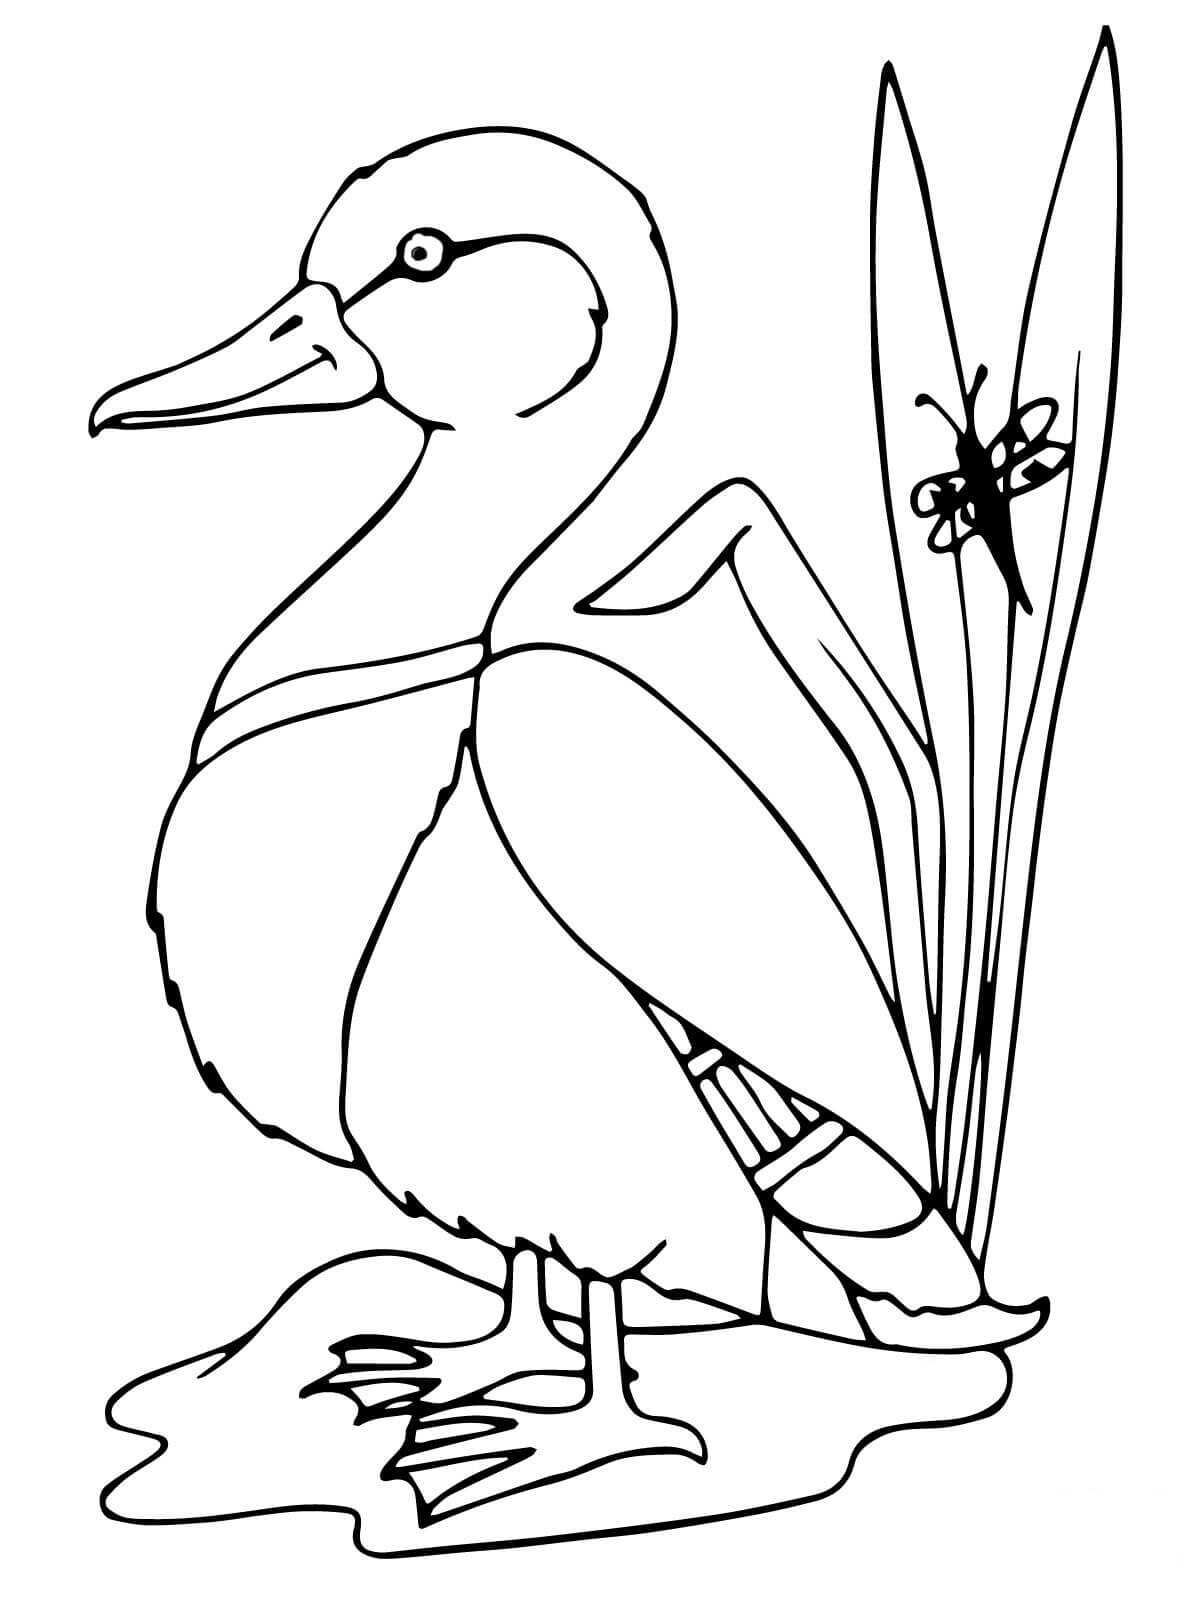 Mallard duck has hefty bodies and rounded heads Coloring Pages